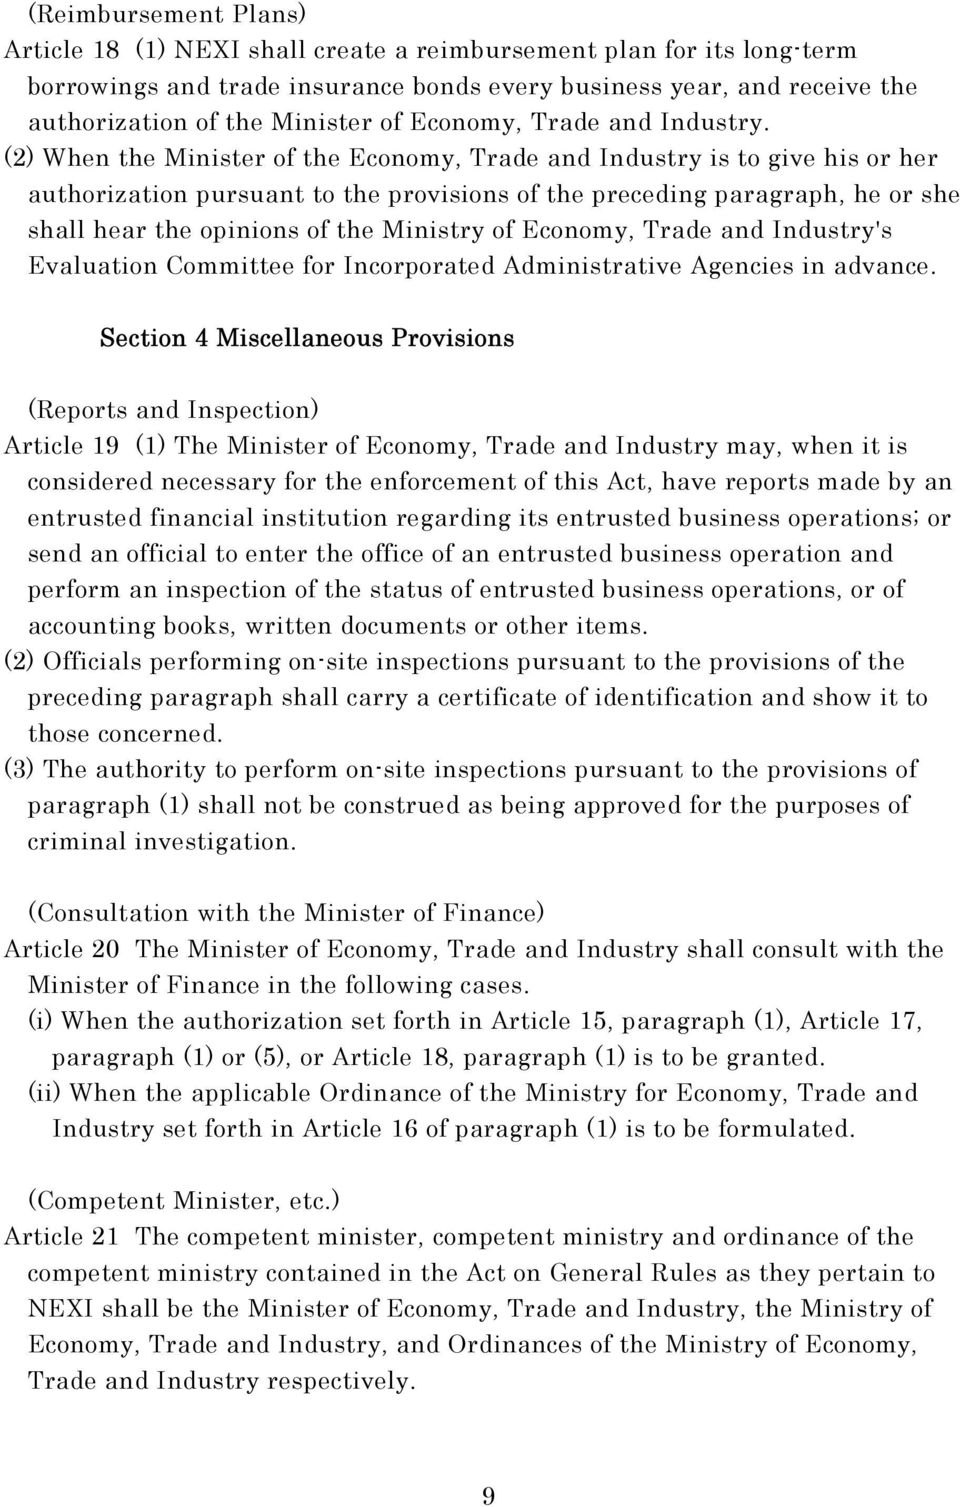 (2) When the Minister of the Economy, Trade and Industry is to give his or her authorization pursuant to the provisions of the preceding paragraph, he or she shall hear the opinions of the Ministry